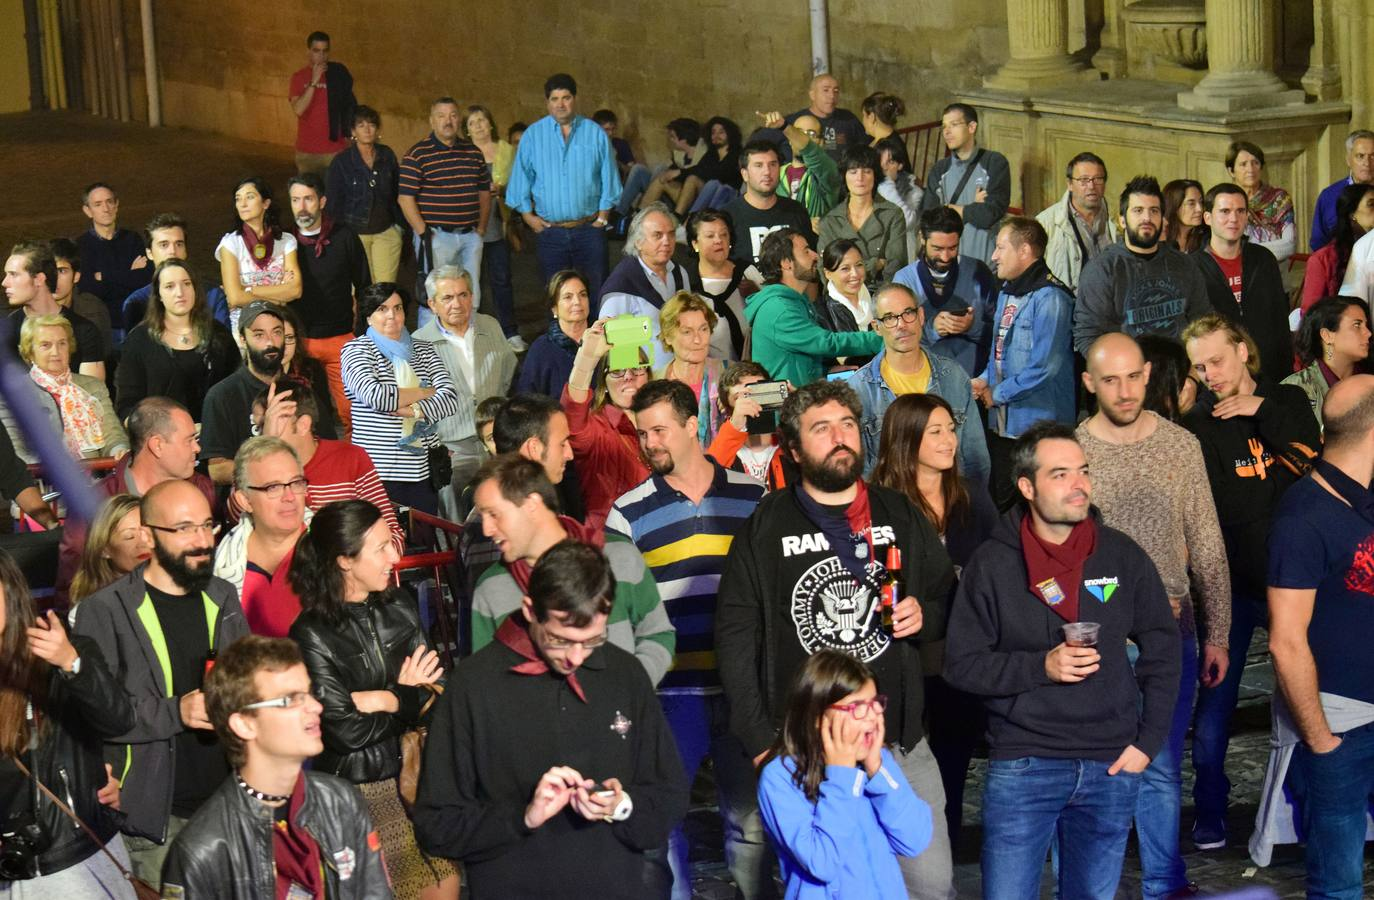 Natural Music + The End + Inaudita en el Parrilla Rock